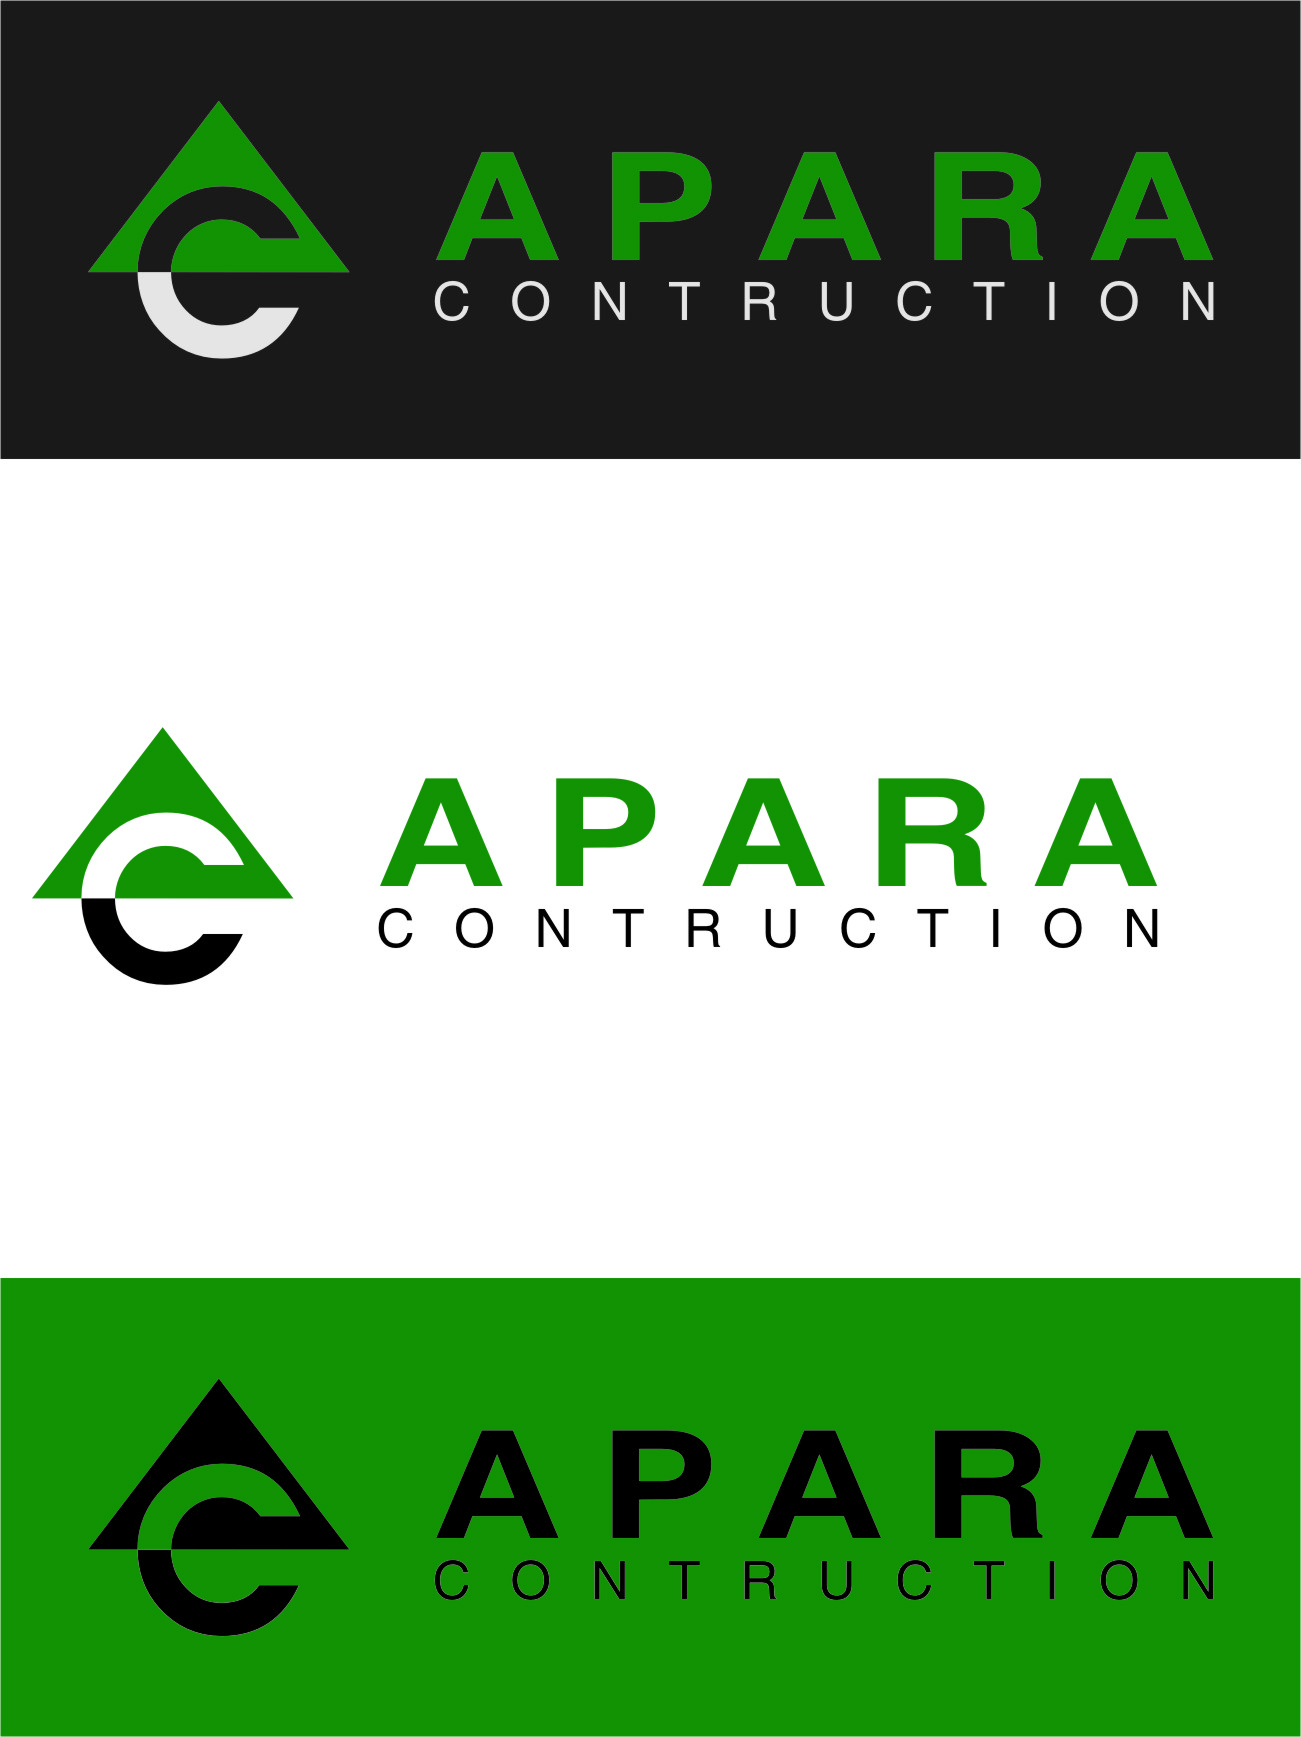 Logo Design by RasYa Muhammad Athaya - Entry No. 195 in the Logo Design Contest Apara Construction Logo Design.